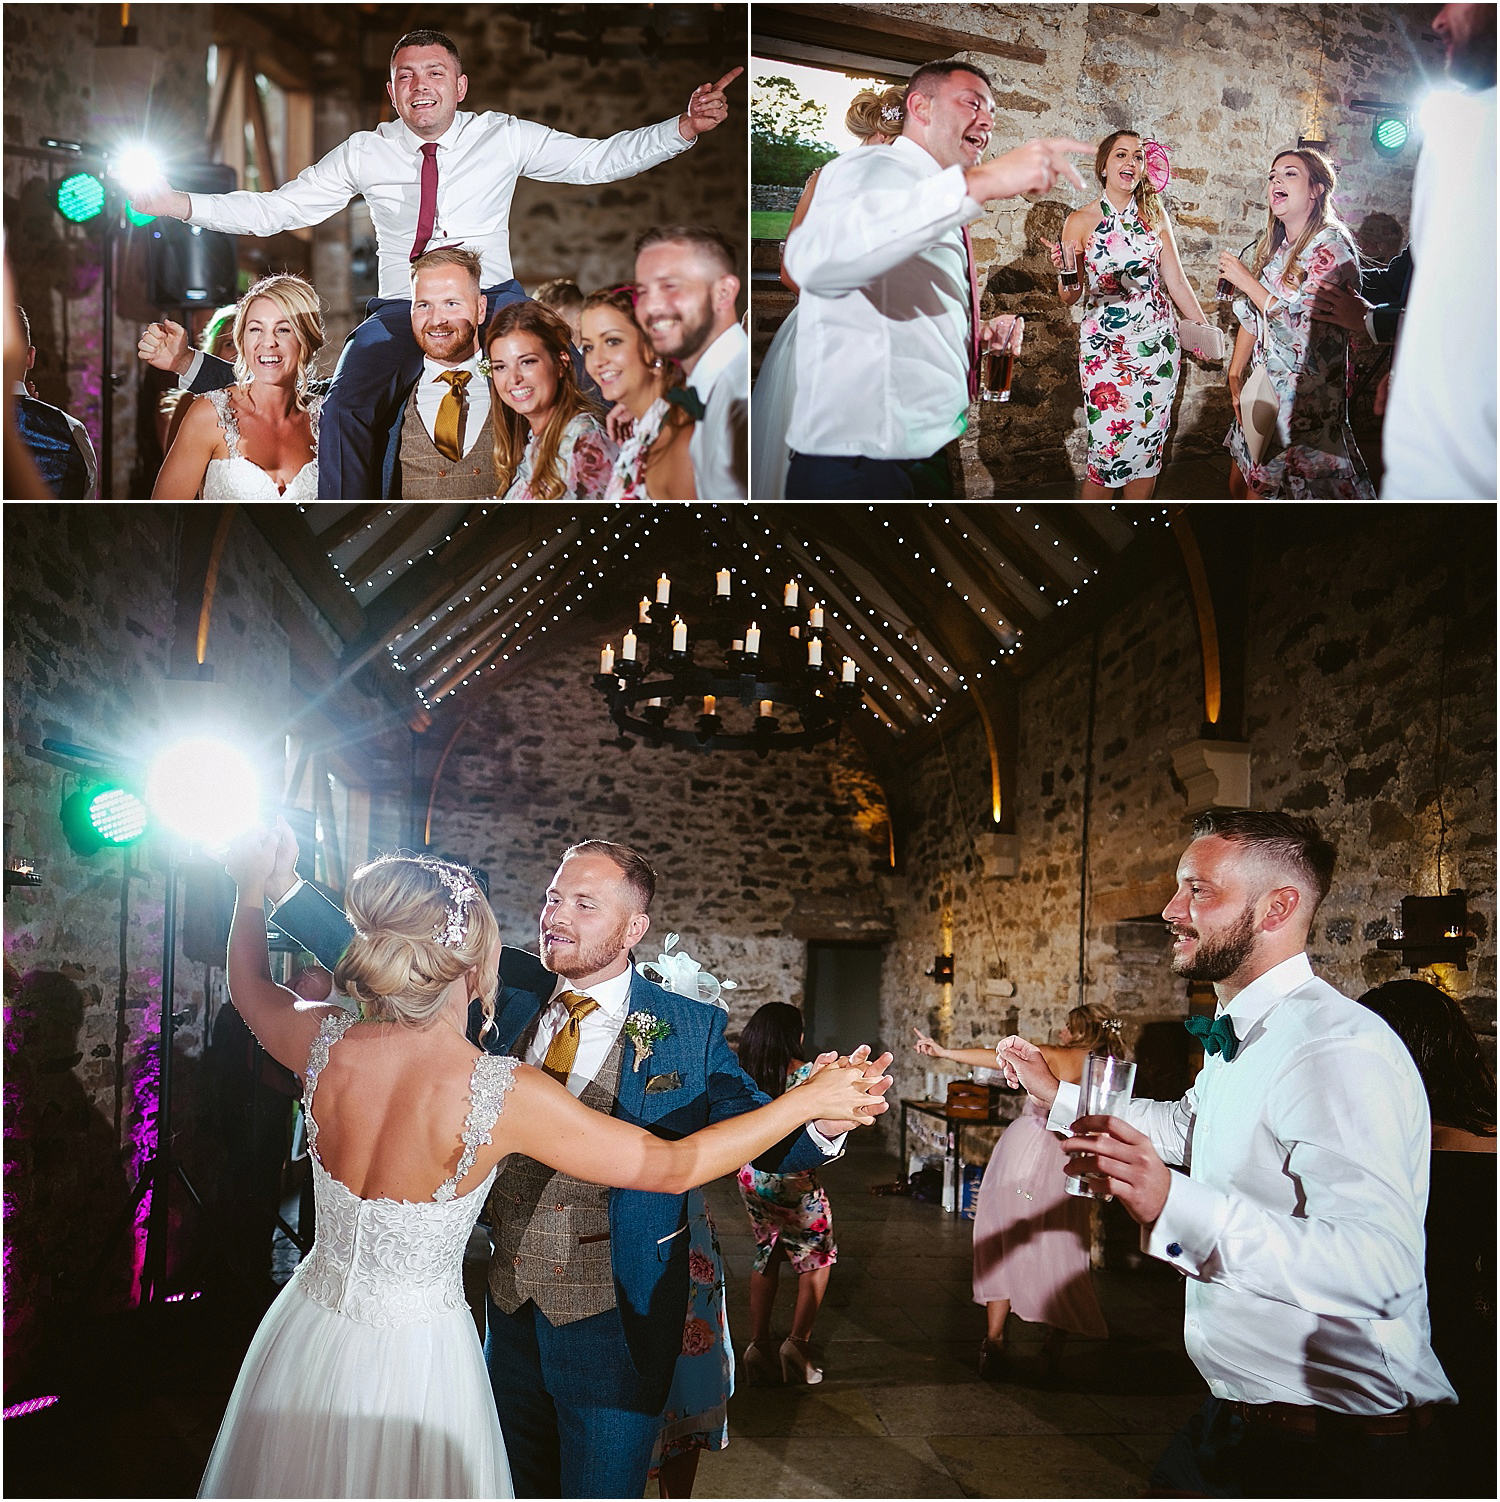 Wedding at Healey Barn - wedding photography by www.2tonephotography.co.uk 107.jpg